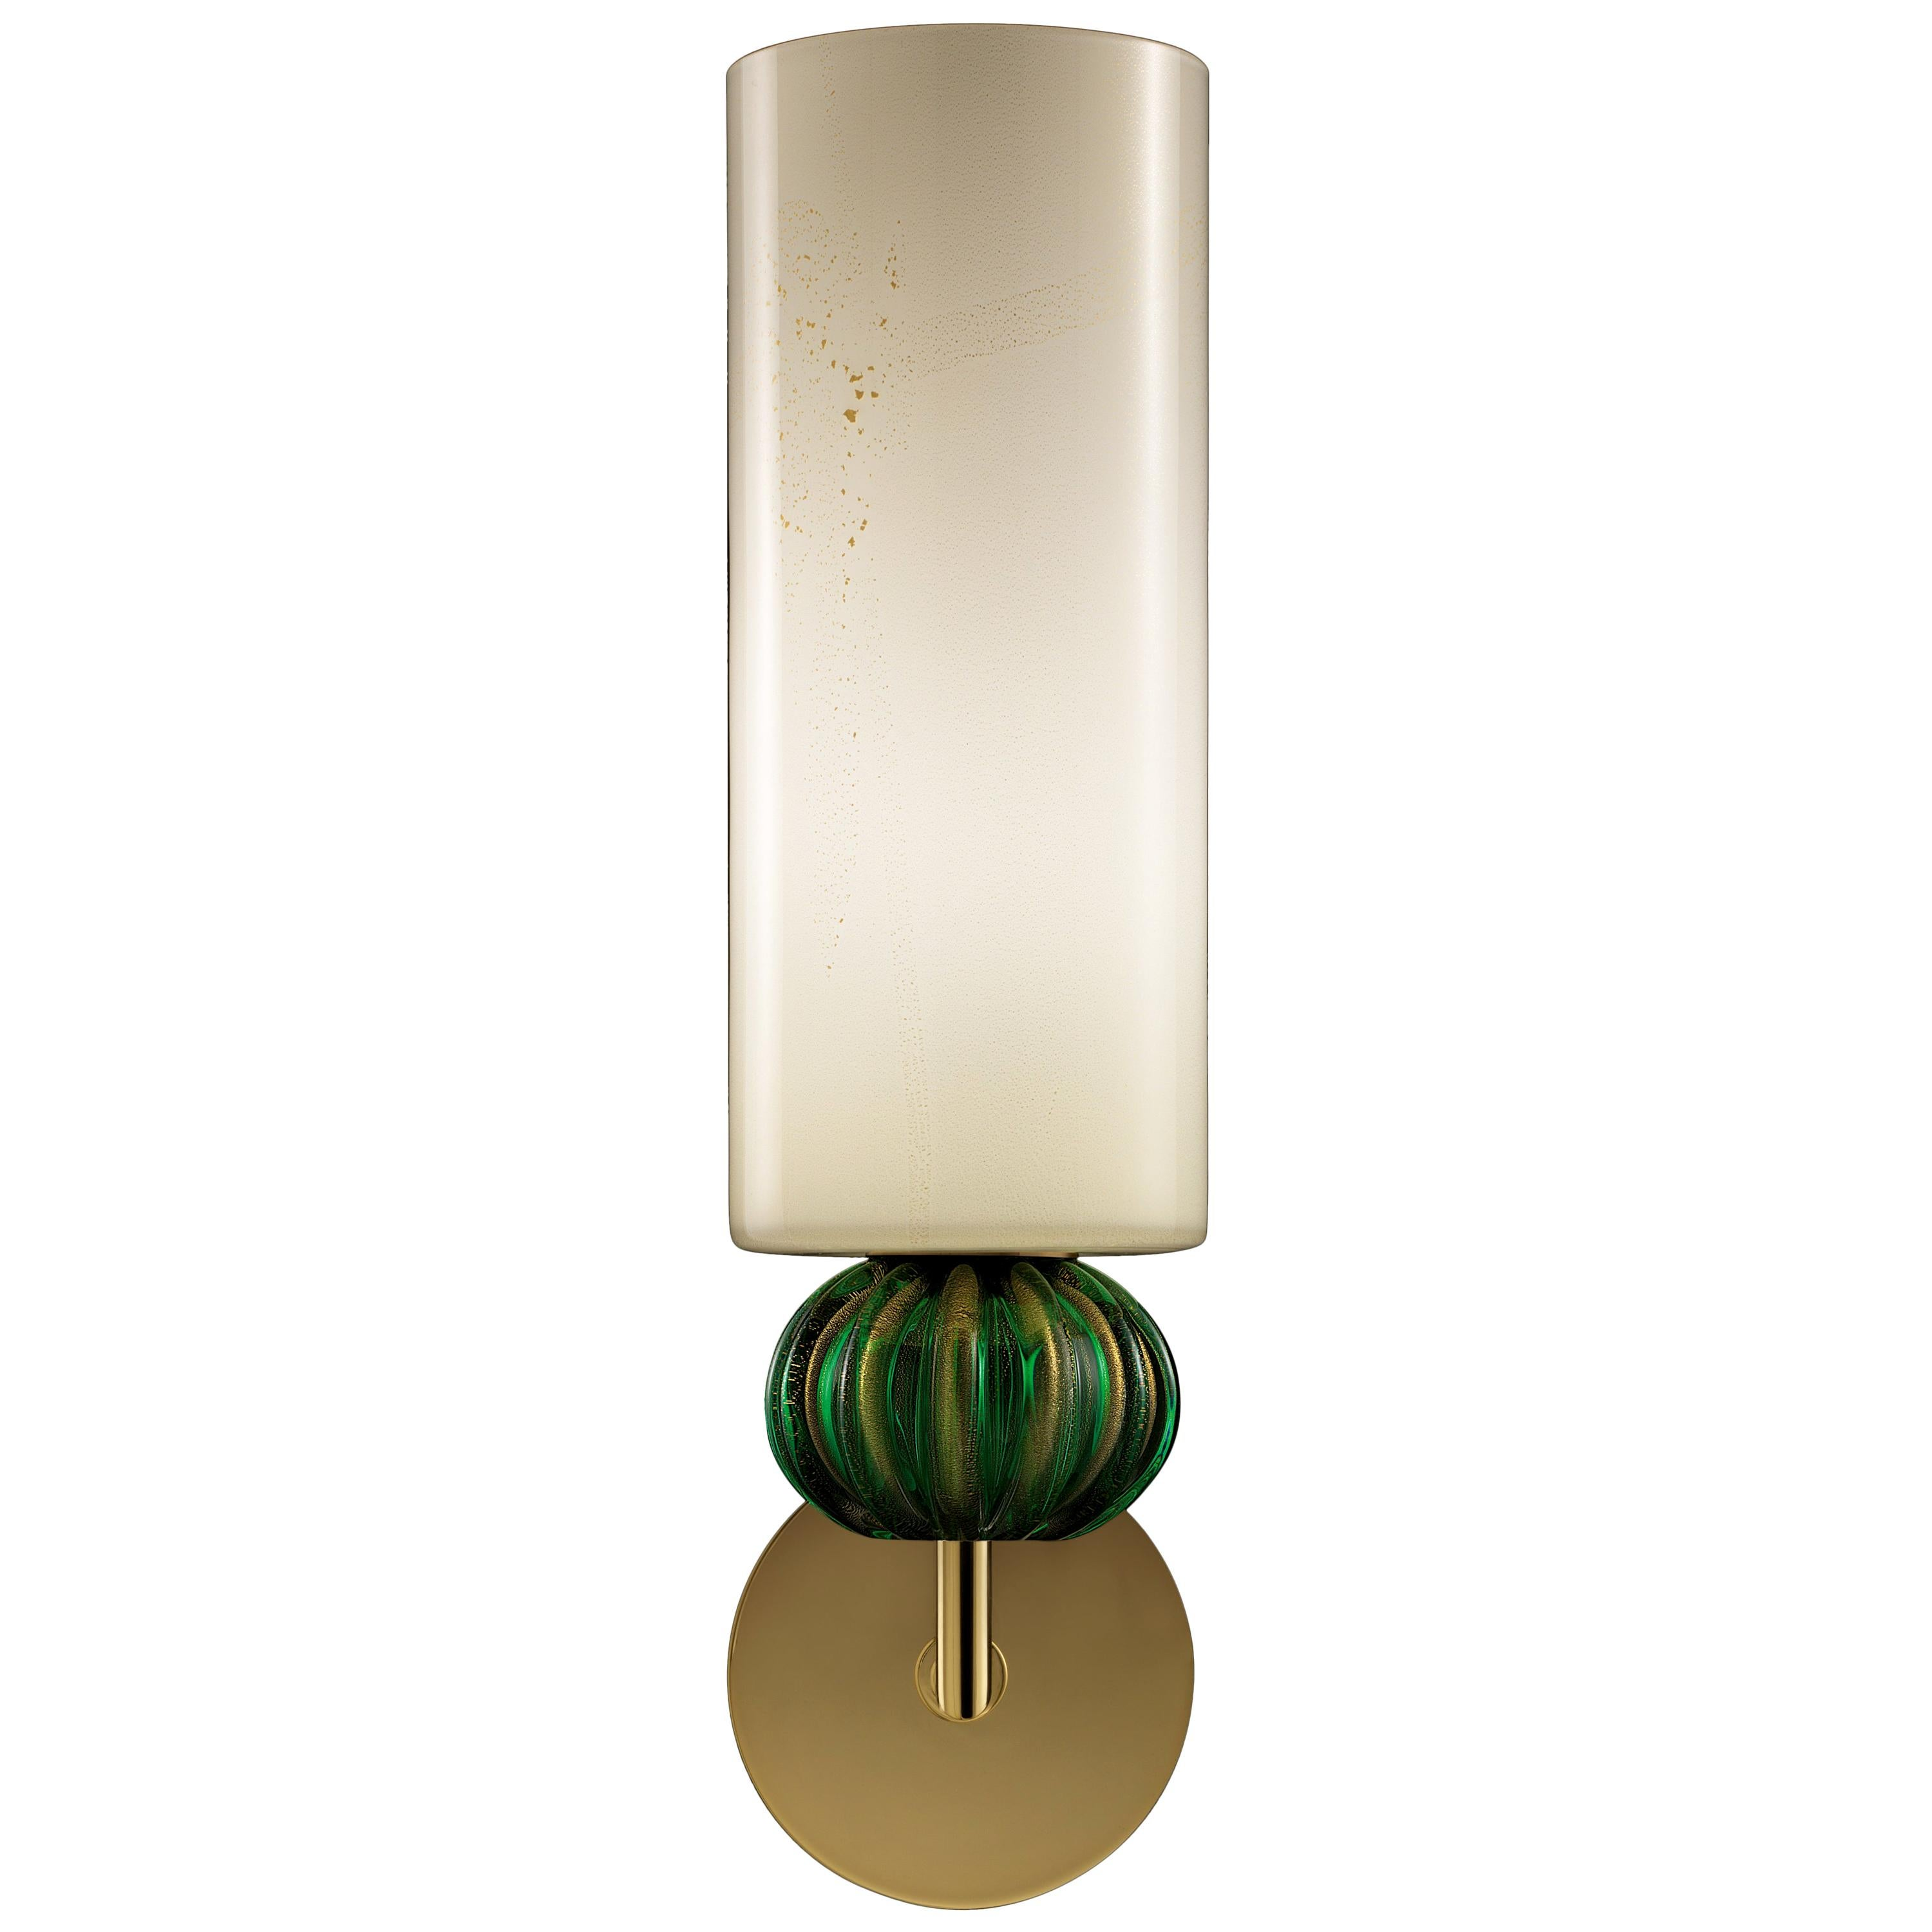 Gallia 5627 Wall Sconce in Glass, by Barovier & Toso